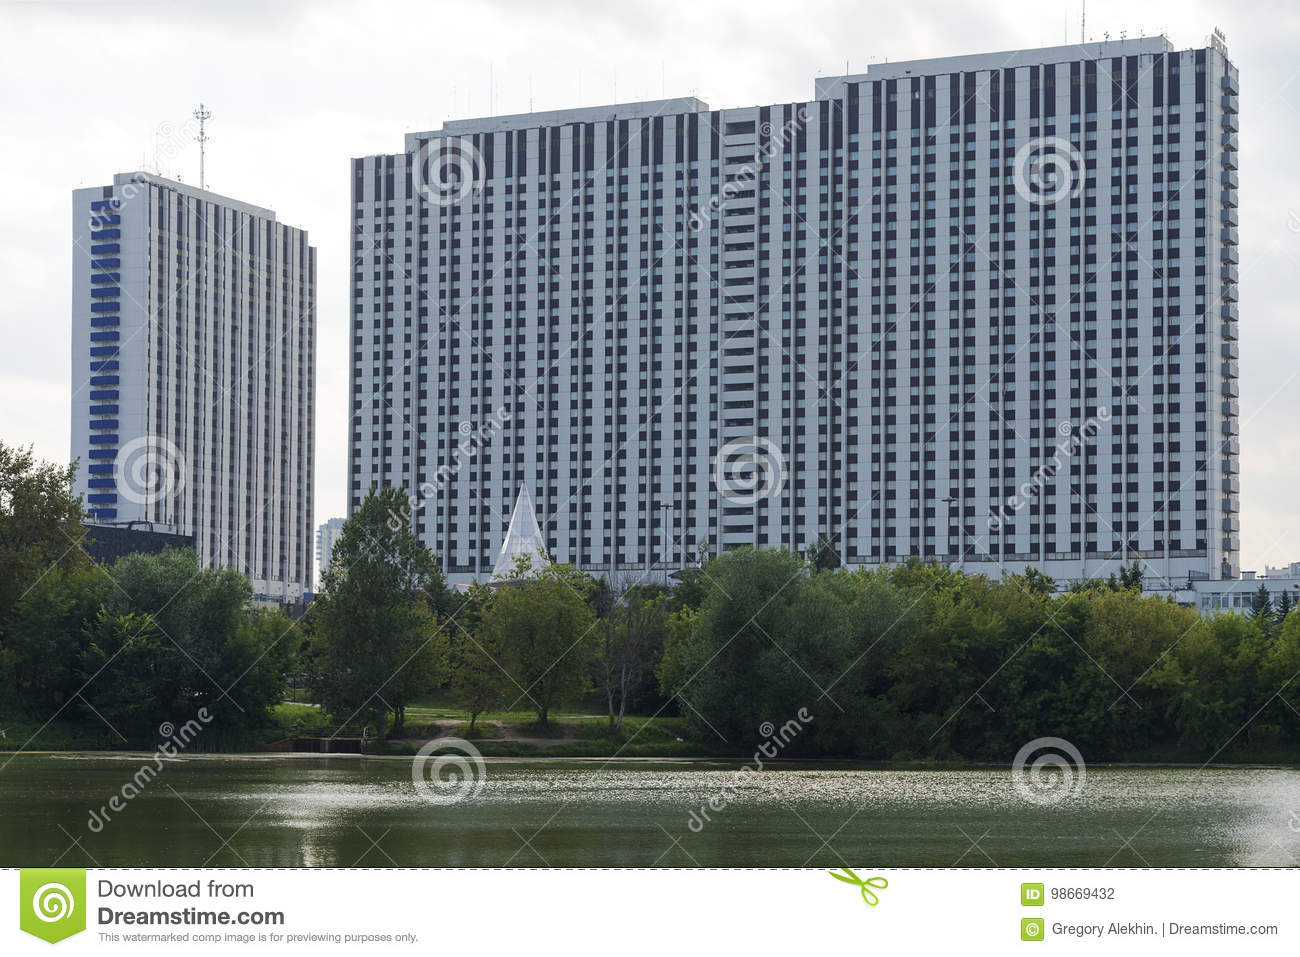 High-rise building by the river in Moscow.